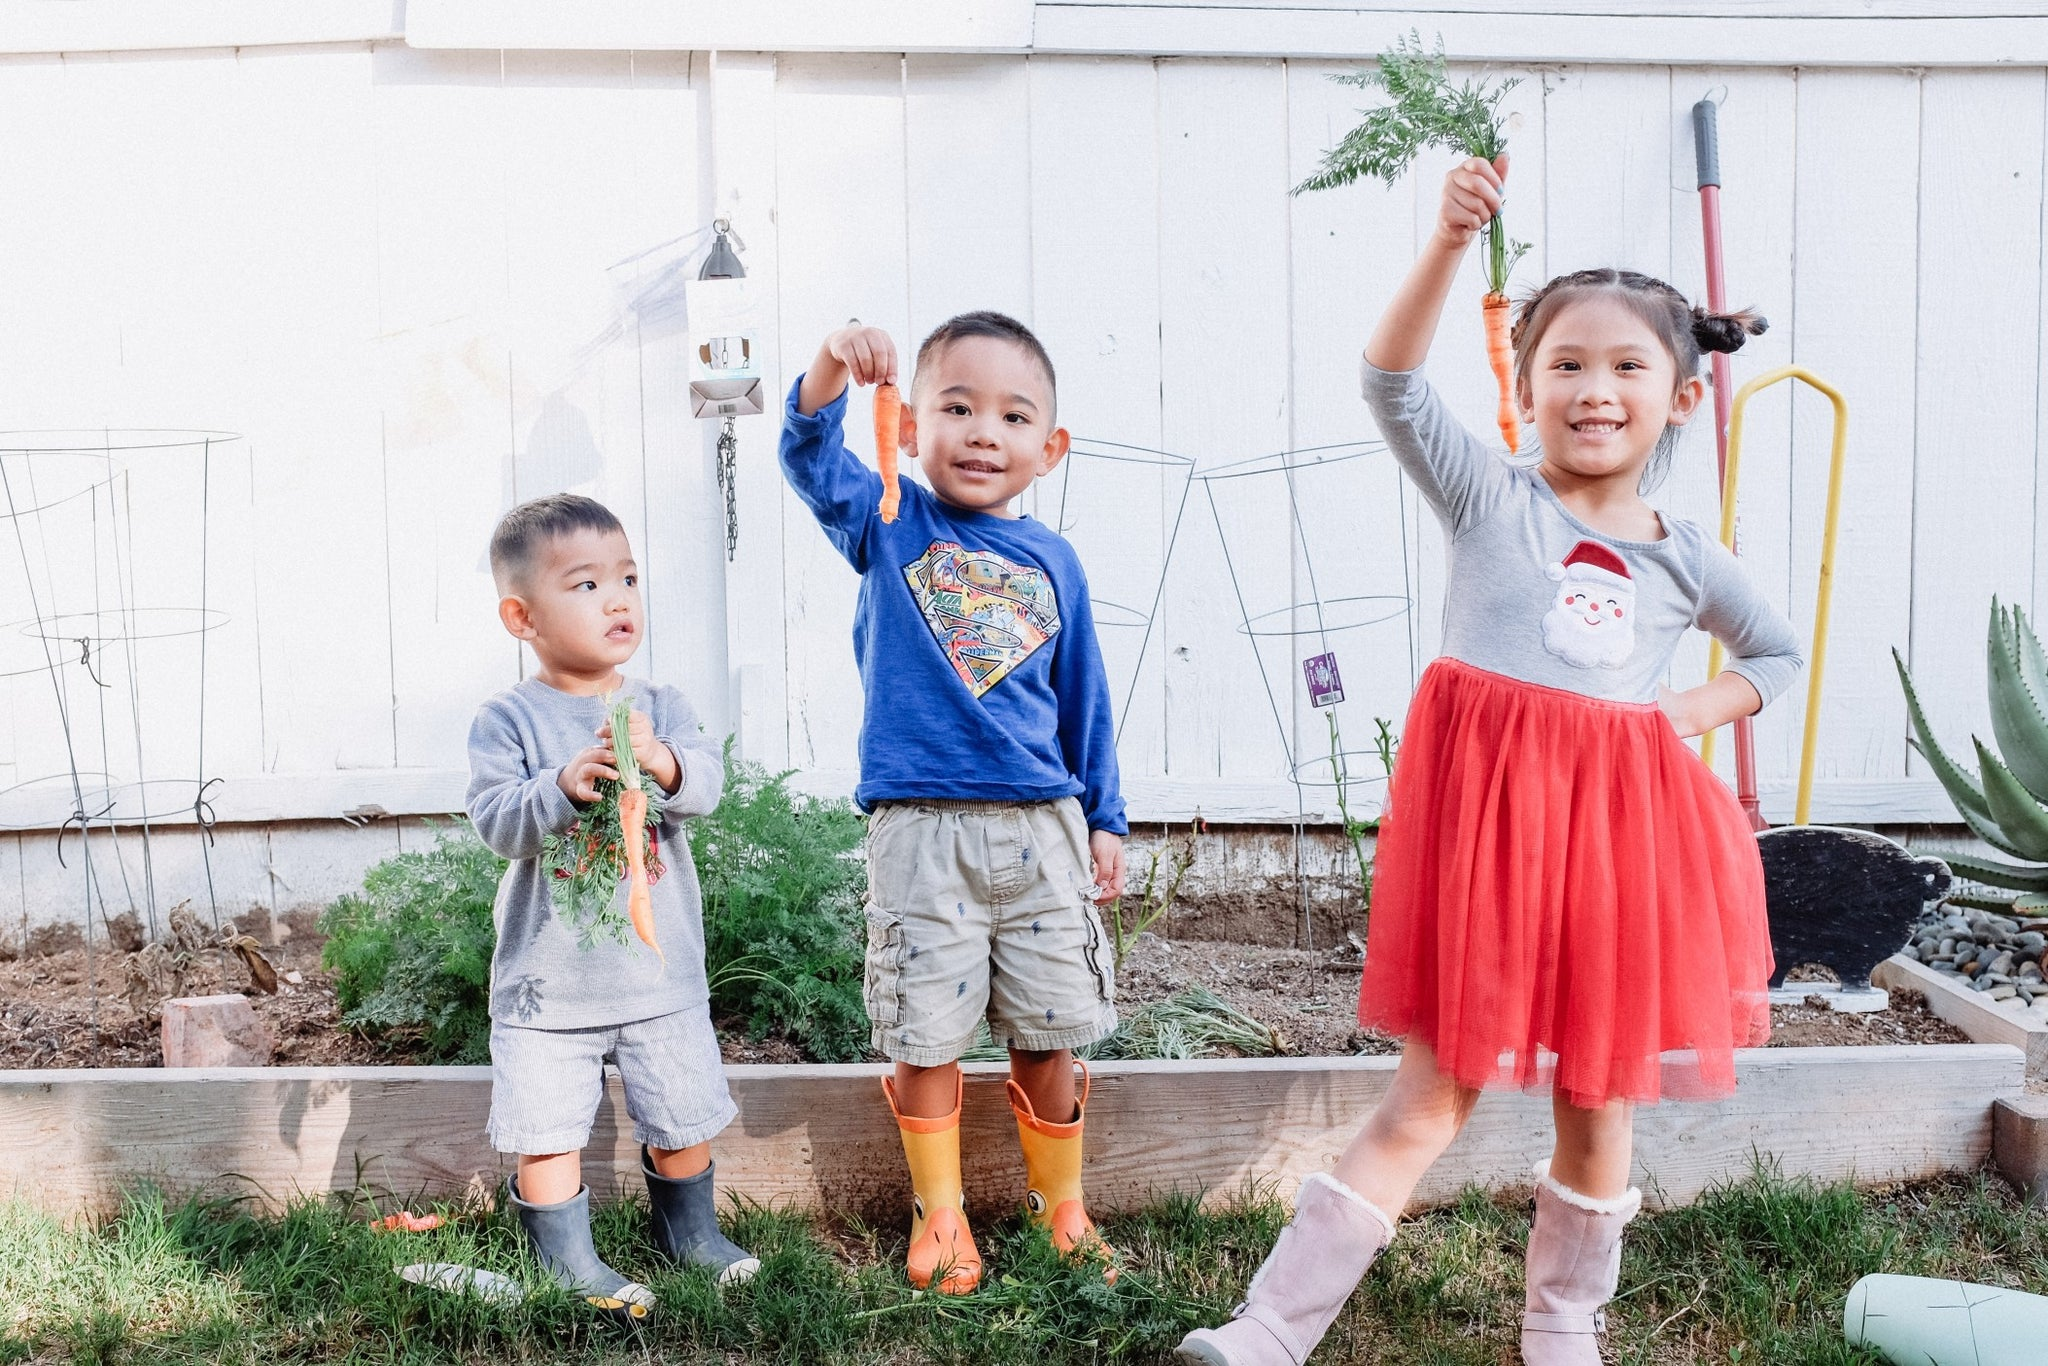 Three kids standing in front of a vegetable patch, each holding a carrot and smiling.